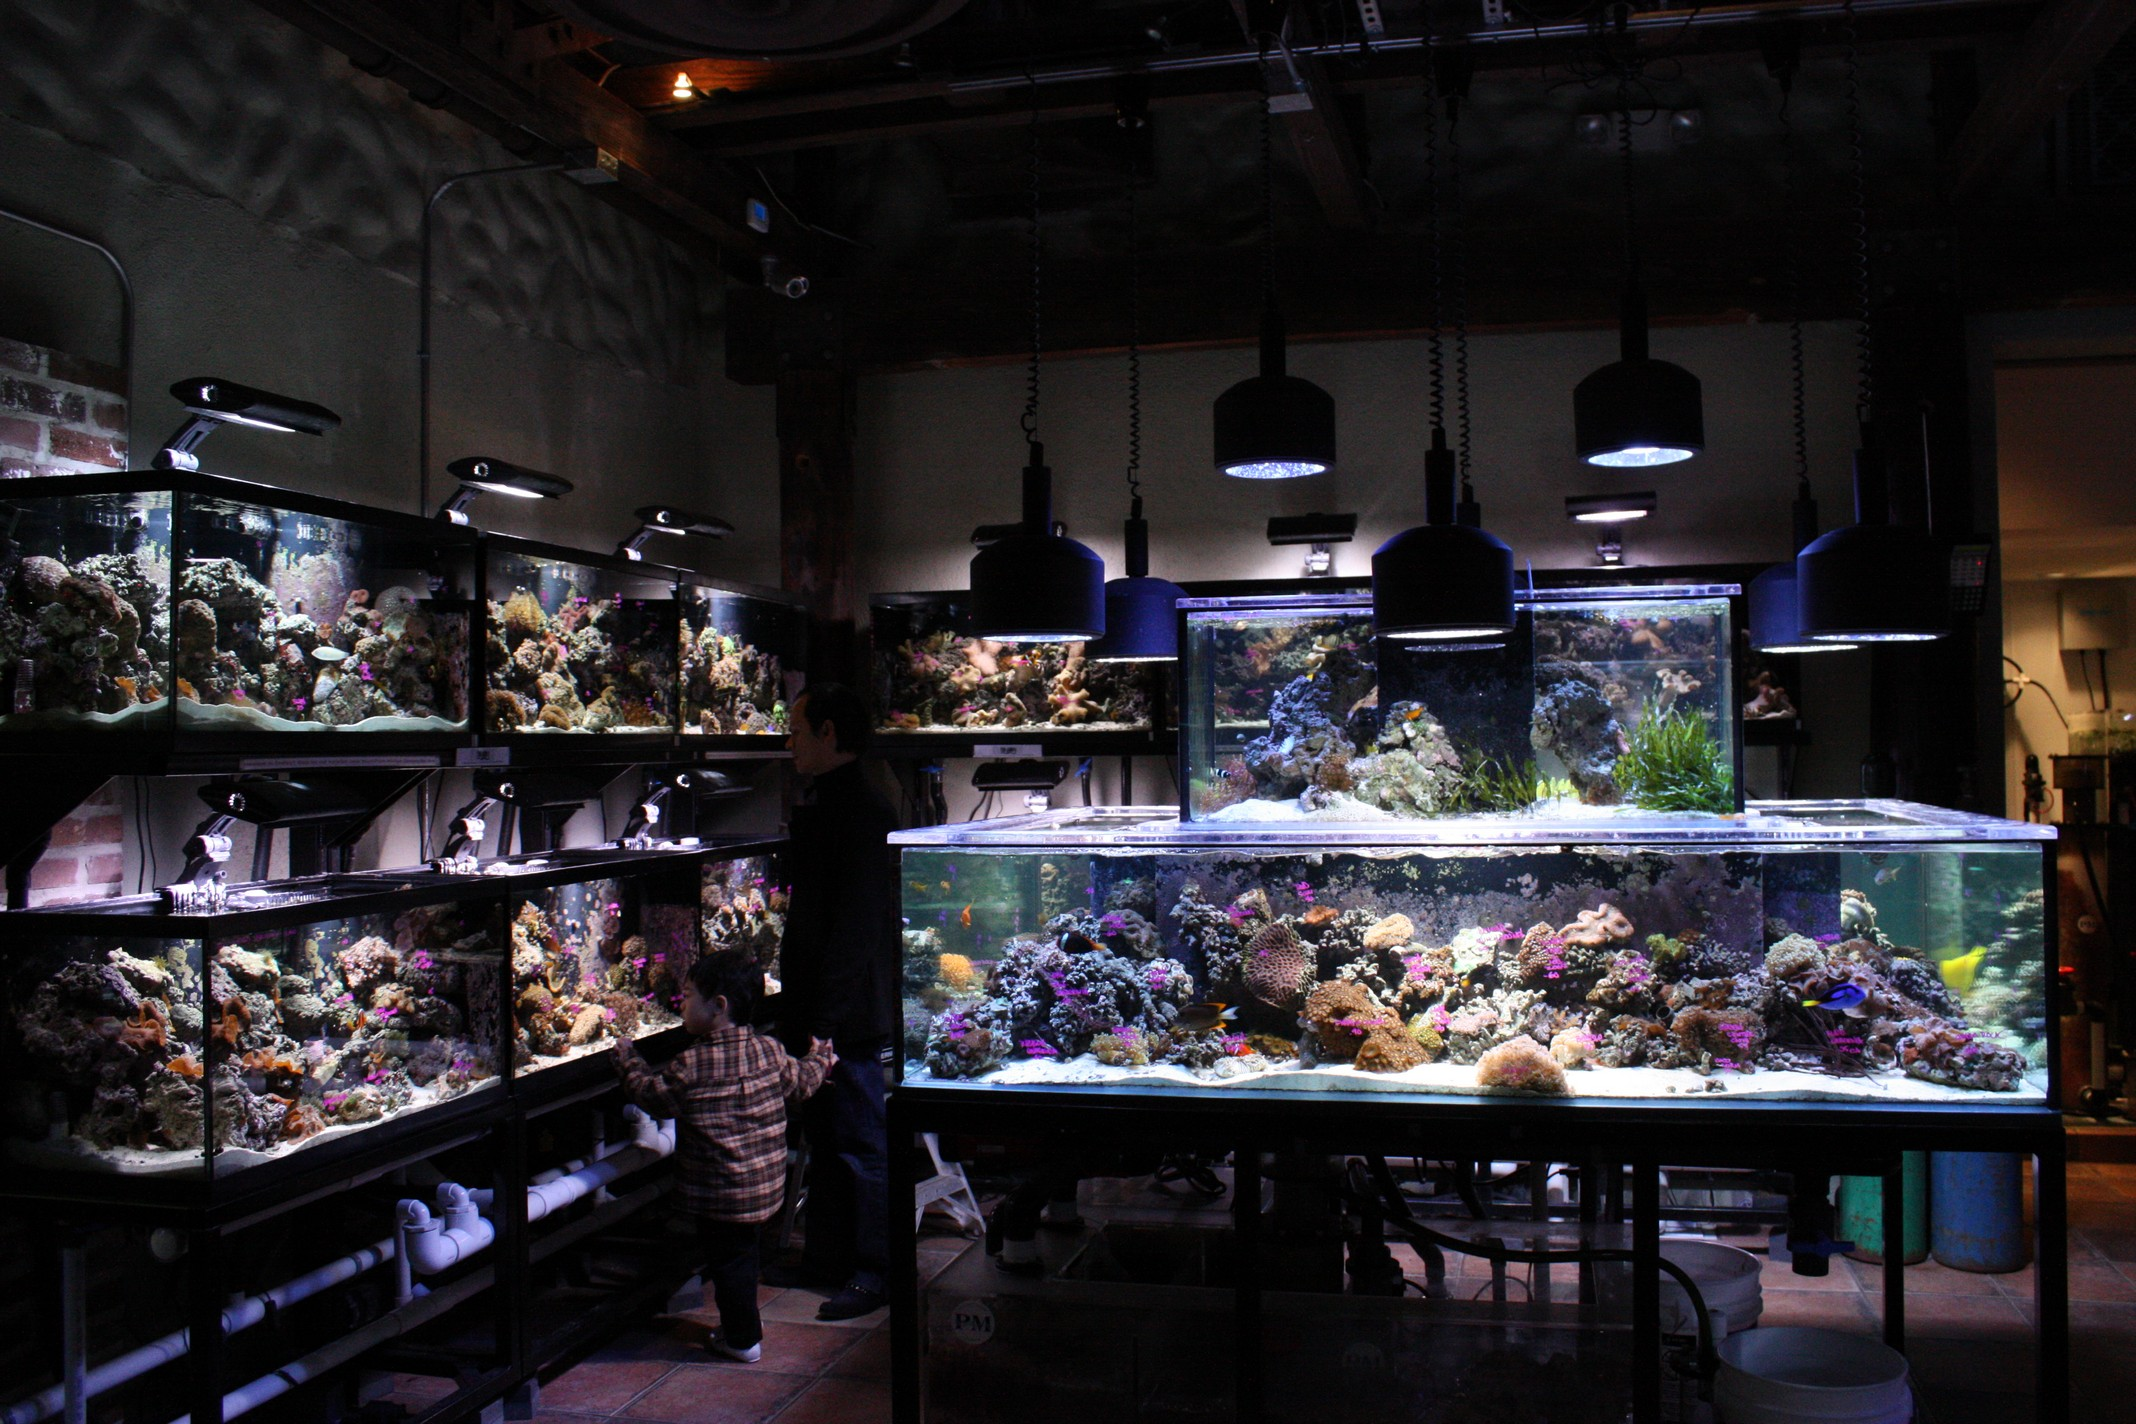 Local fish store mixes alcohol and aquariums aquanerd for Tropical fish shop